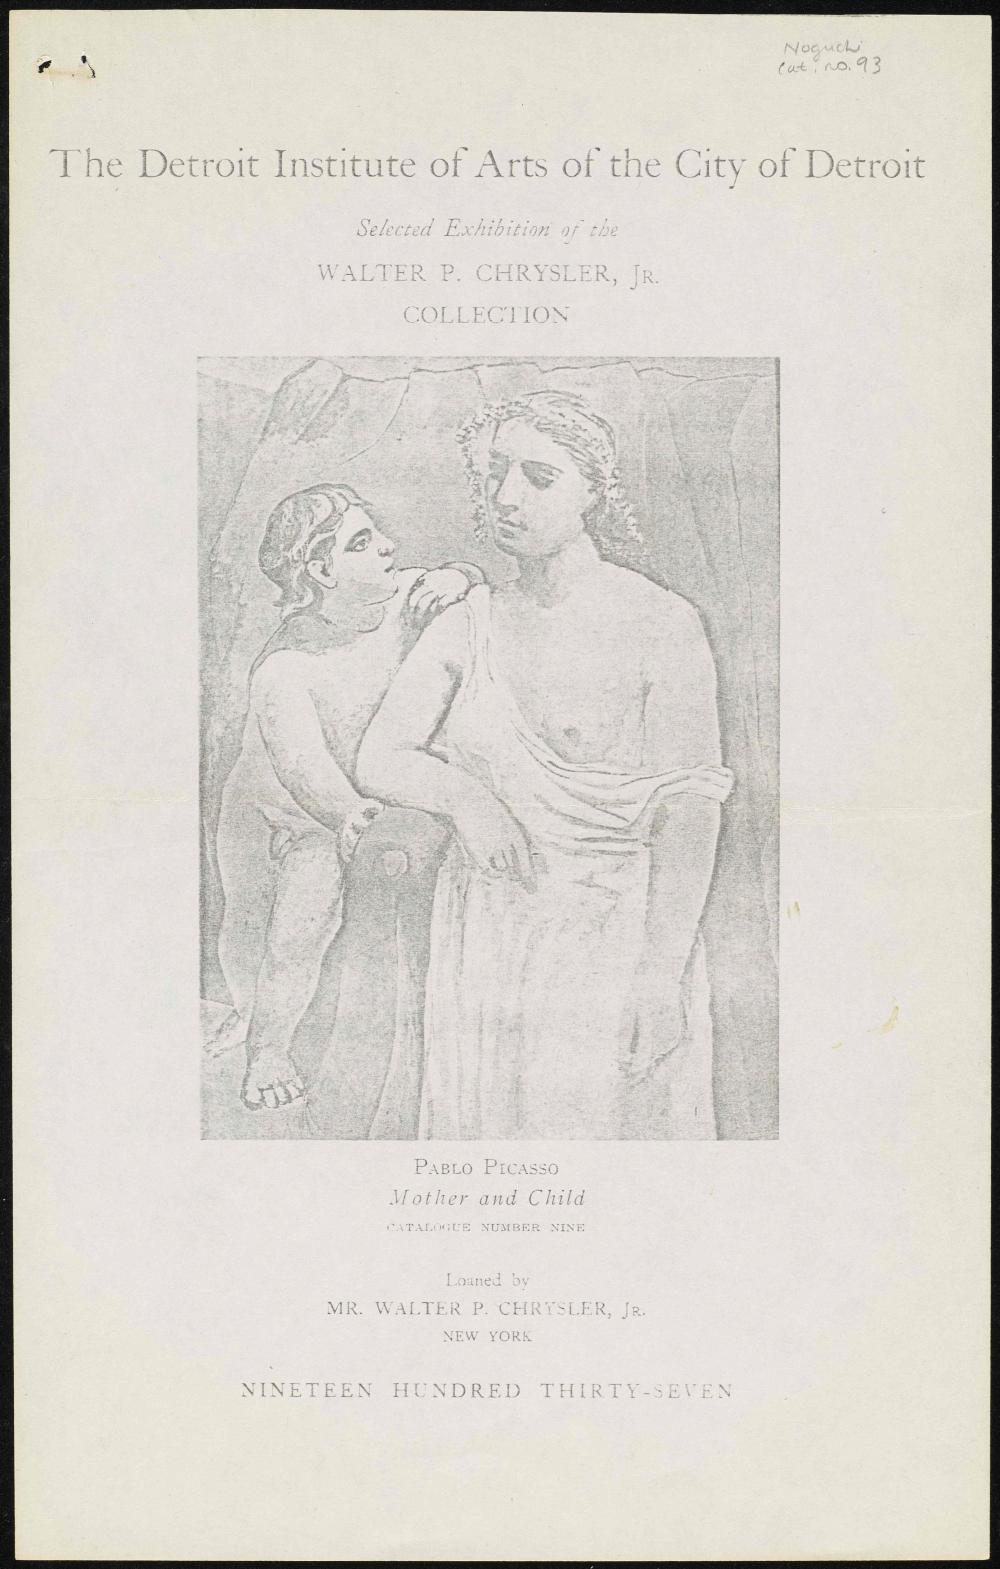 The Detroit Institute of Arts of the City of Detroit exhibition catalog